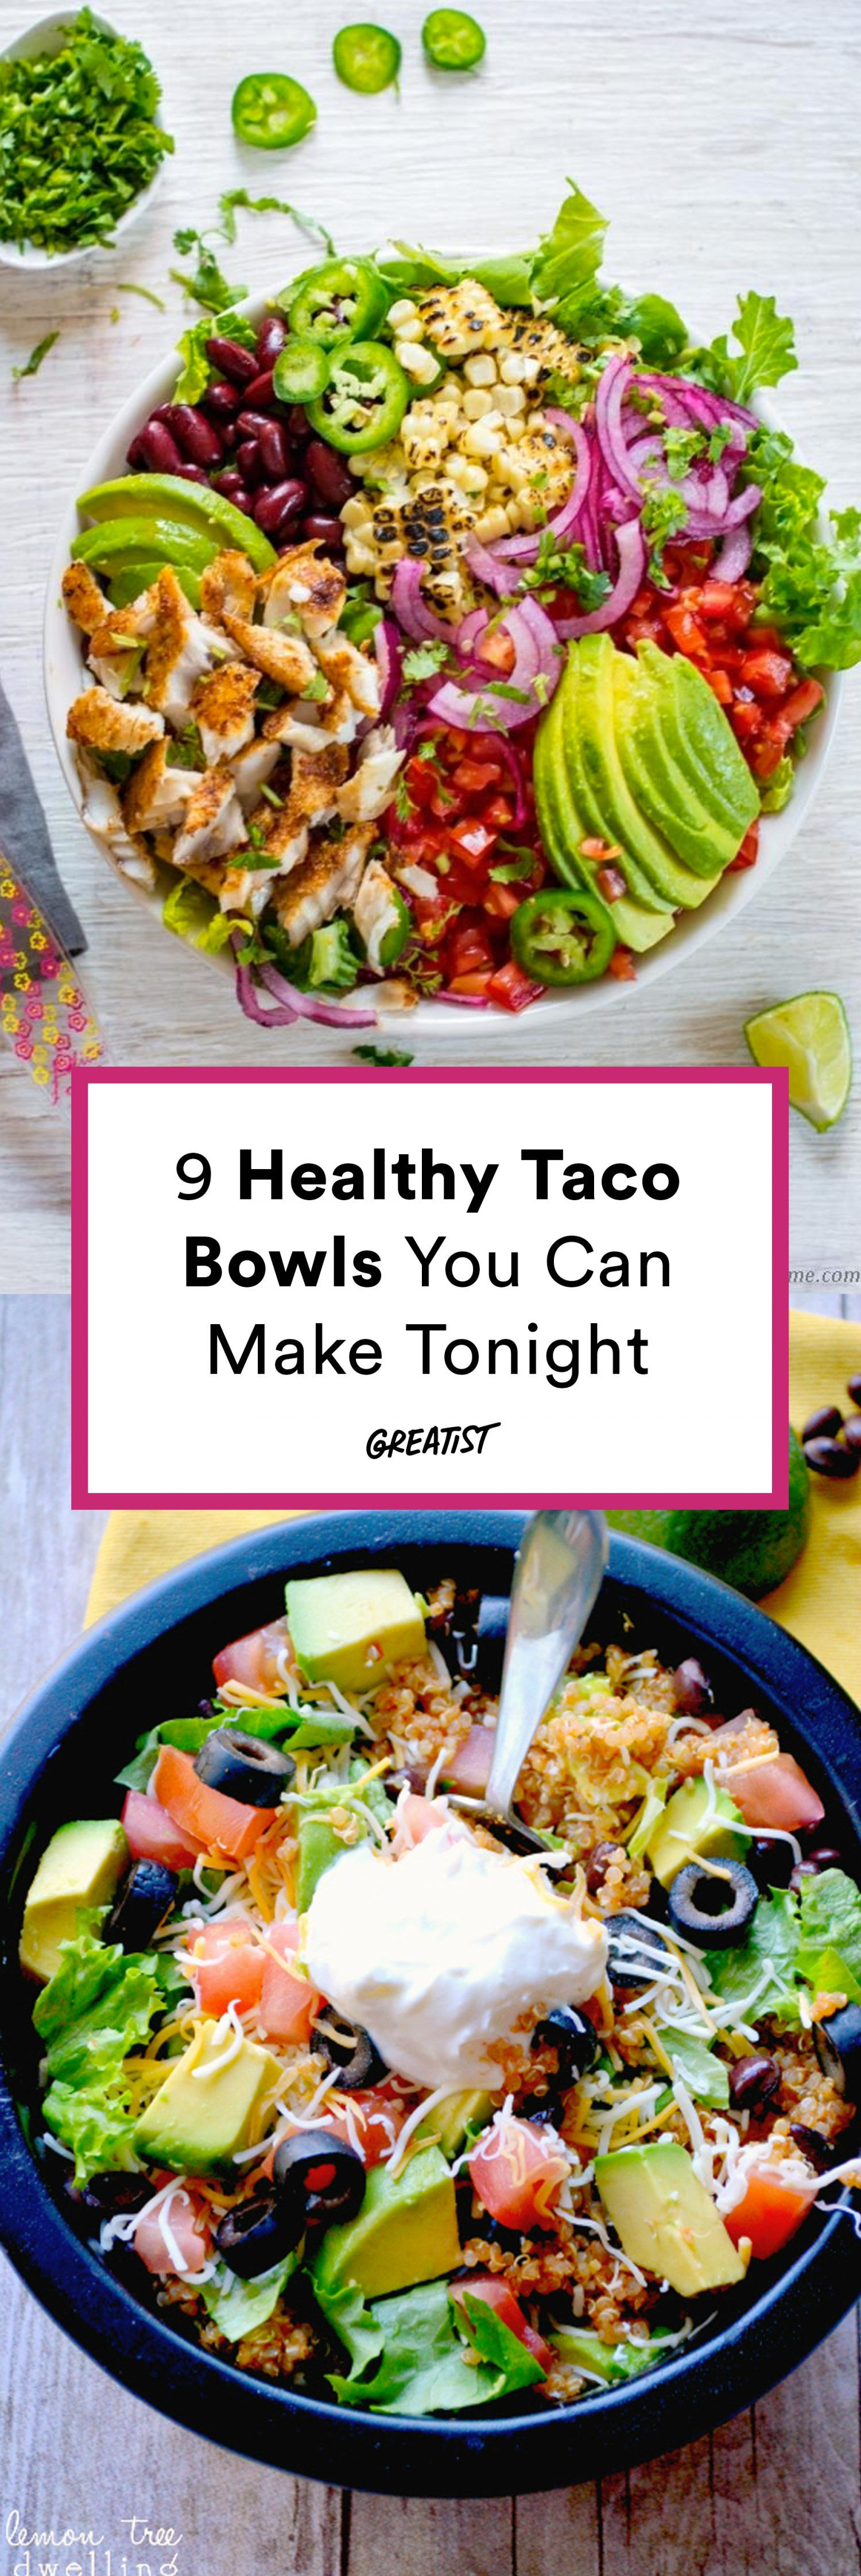 6 Healthy Taco Bowls That Don't Involve A Deep Fried Shell